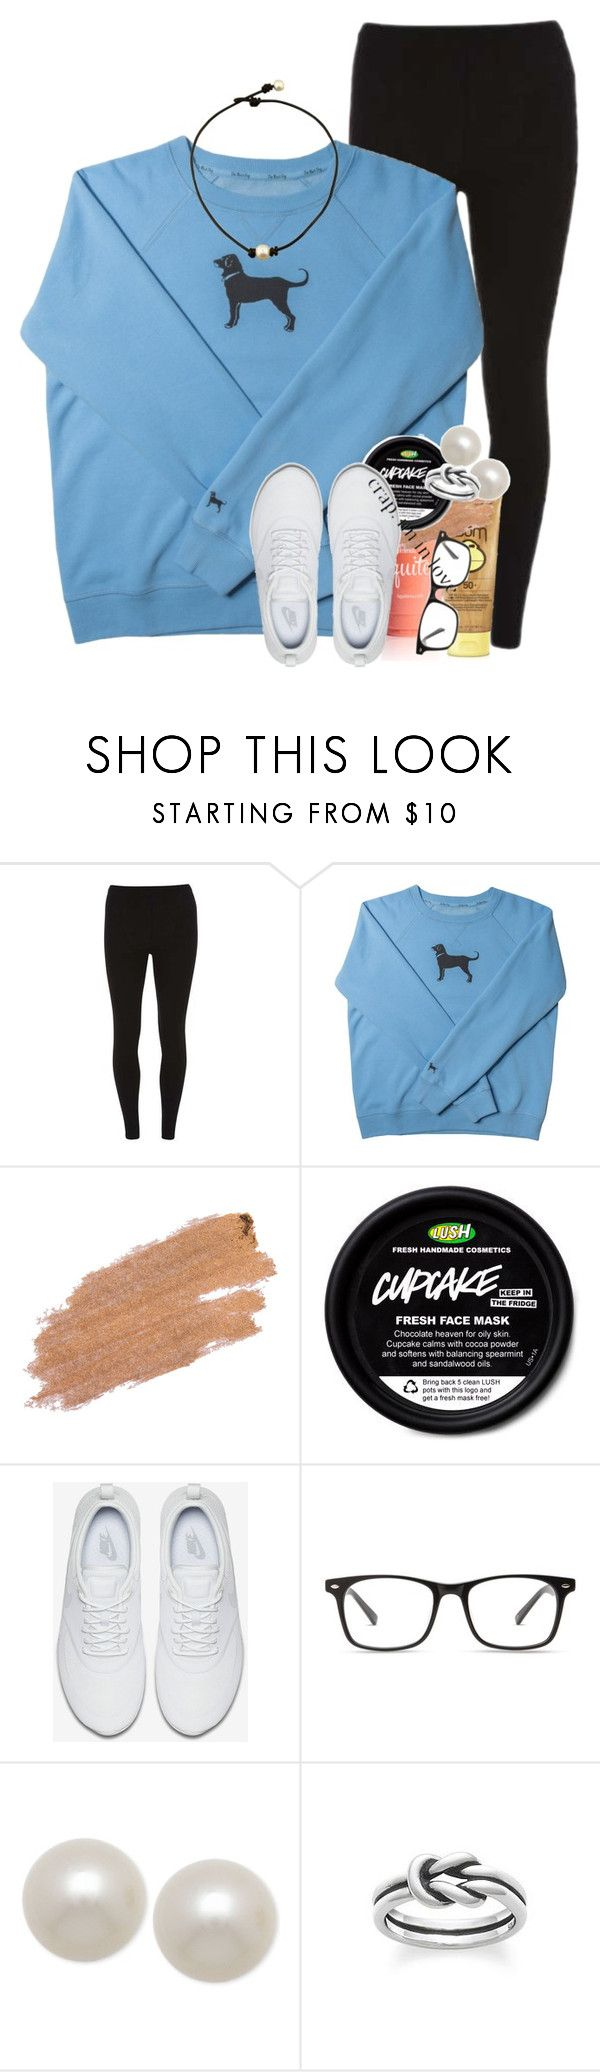 """""""pills n potions"""" by emilyandella ❤ liked on Polyvore featuring Dorothy Perkins, Sun Bum, Jane Iredale, NIKE, Honora and Avery"""